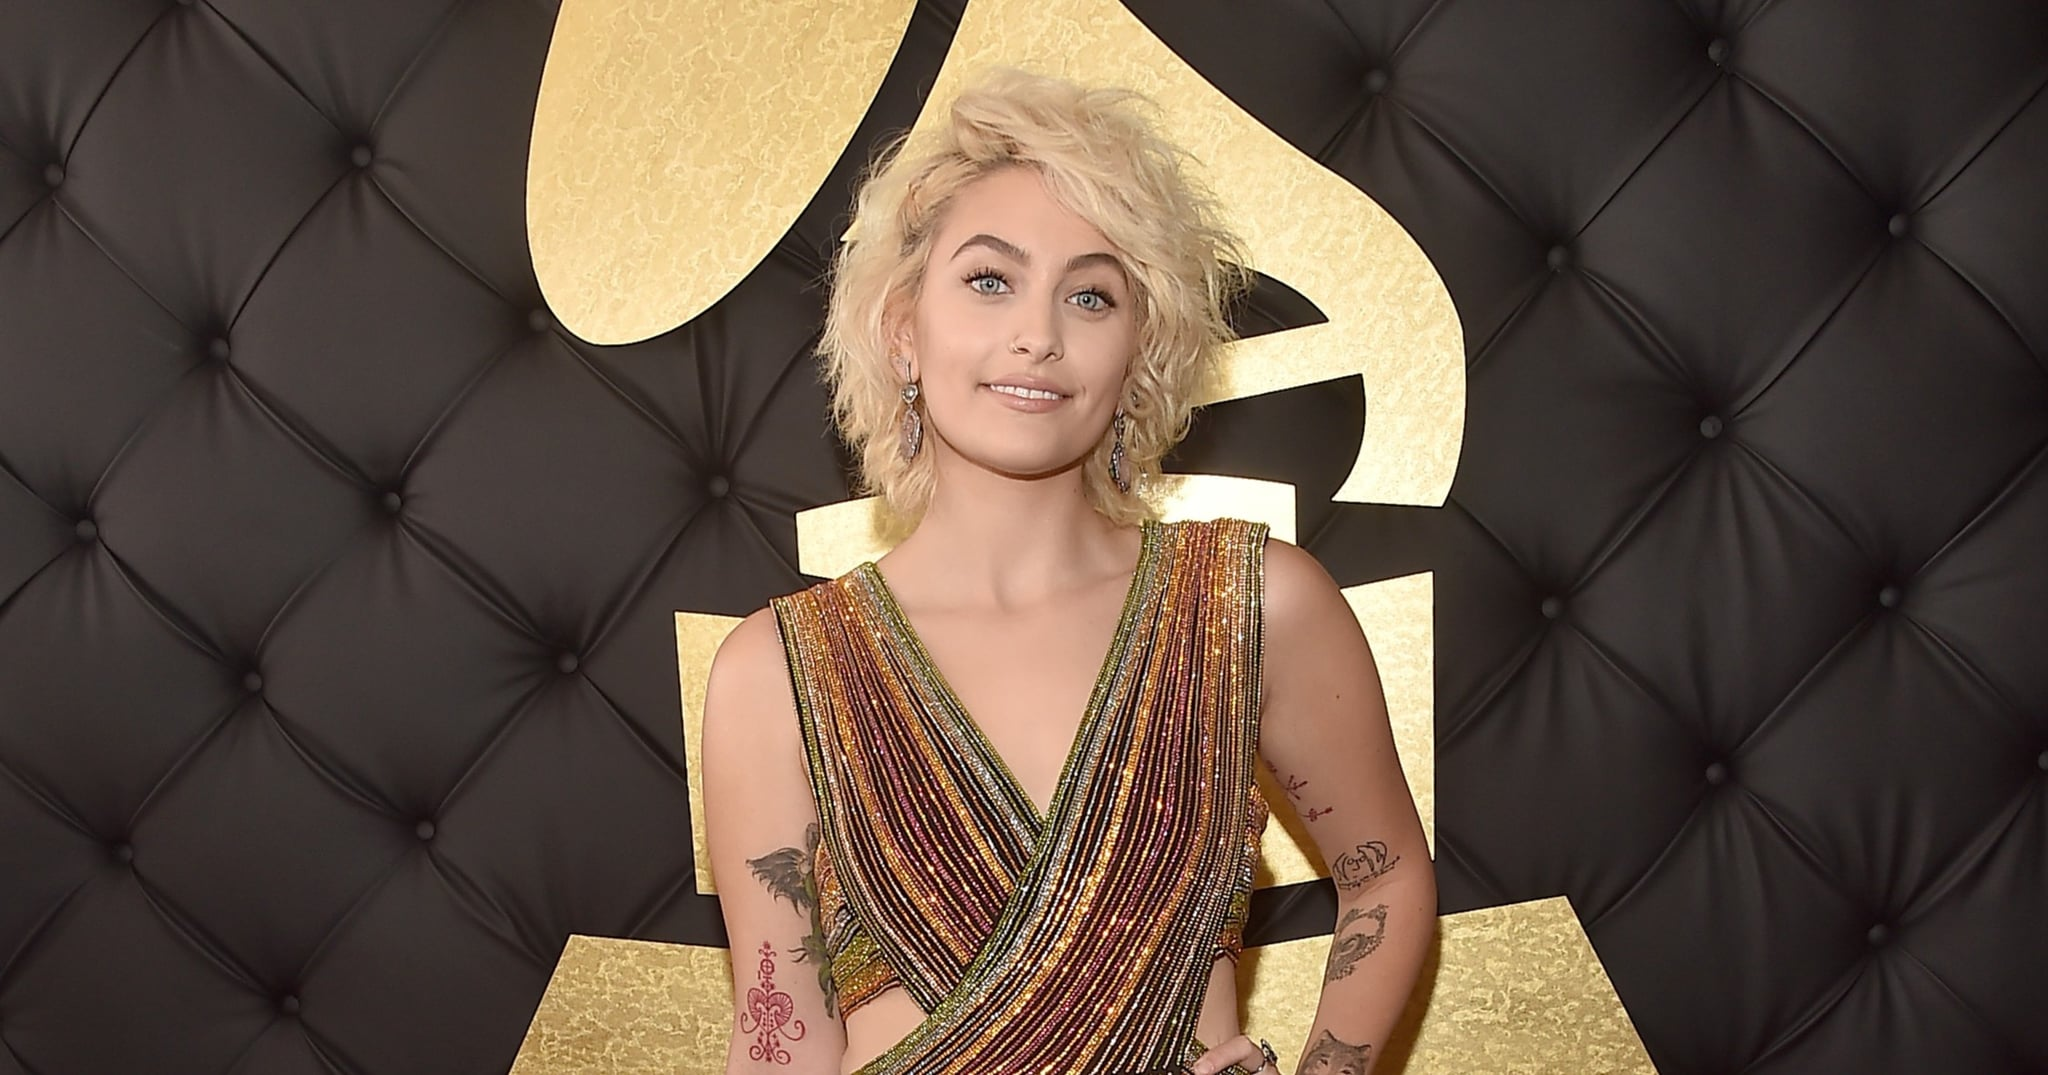 Paris Jackson Responds to Reports That She Checked Into a Treatment Facility